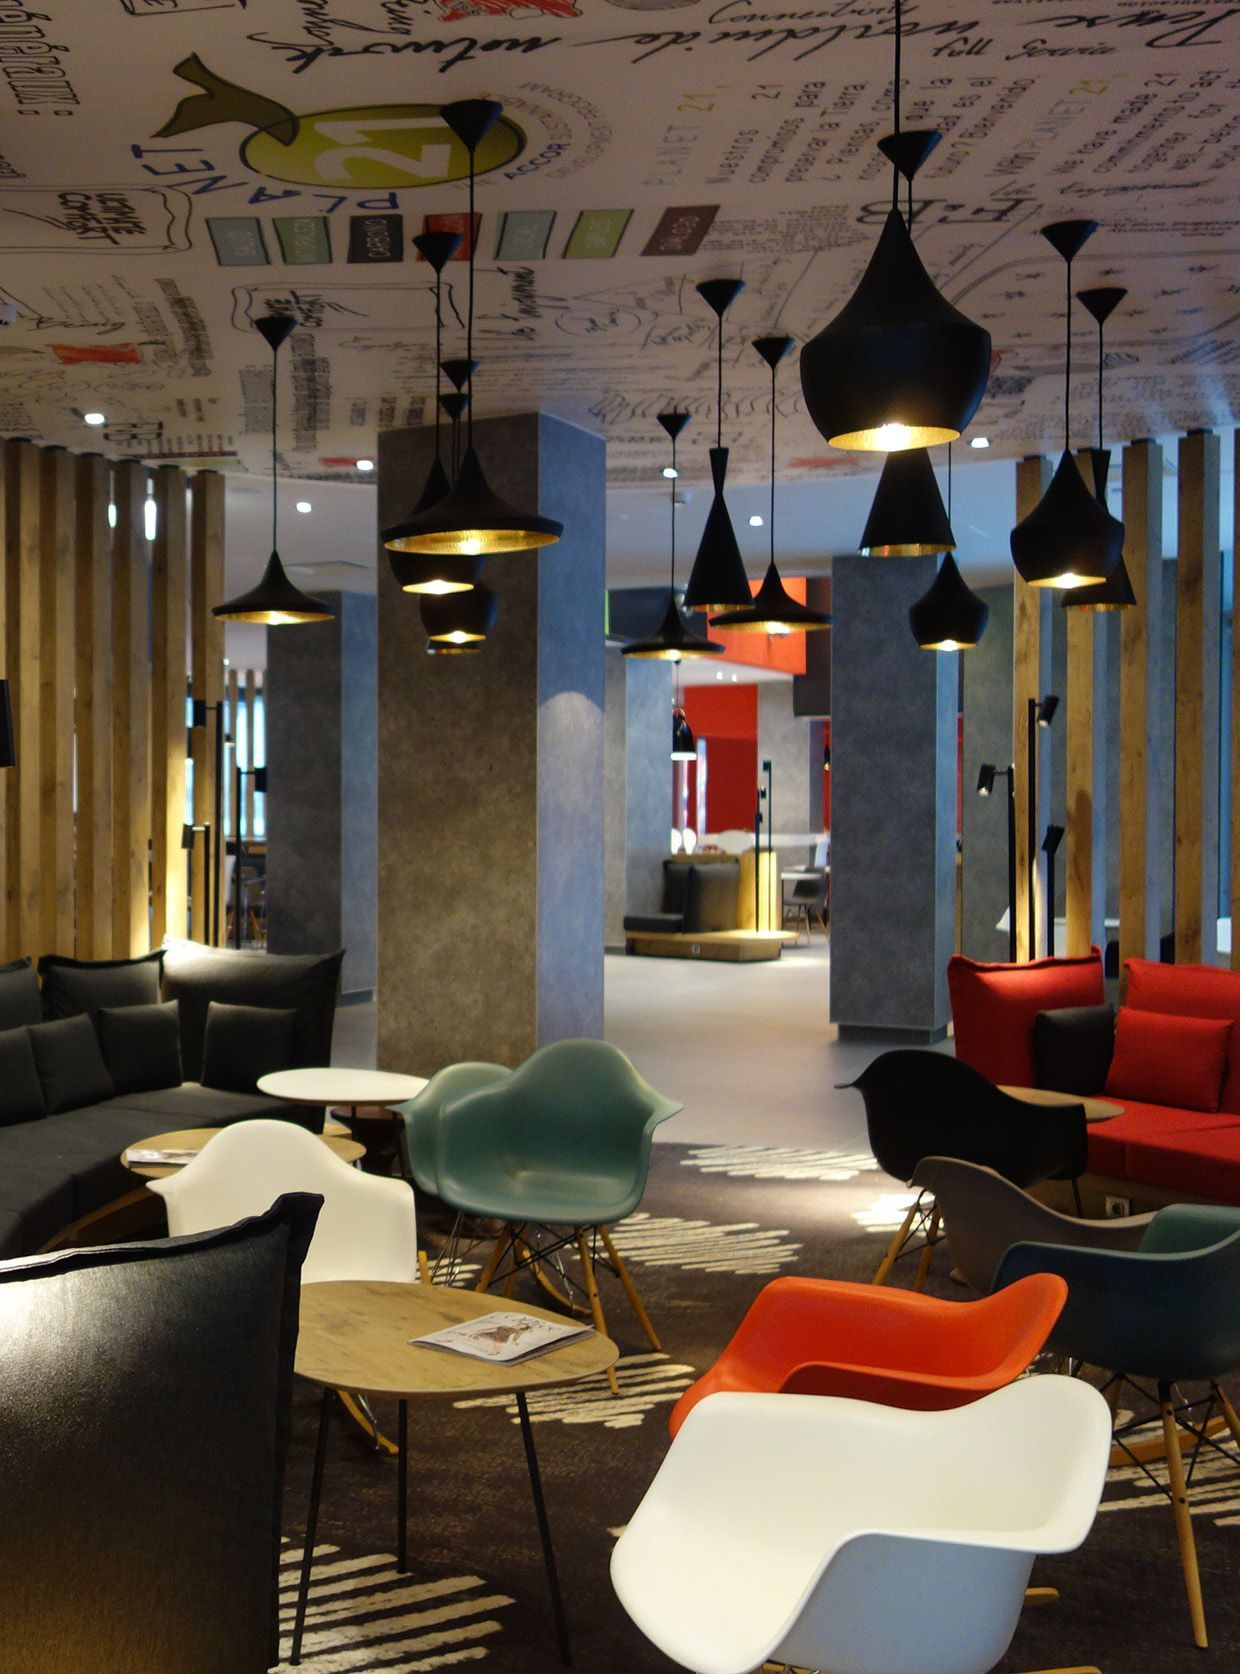 Design Firm Kitzig Interior Design S Top 5 Projects Interior